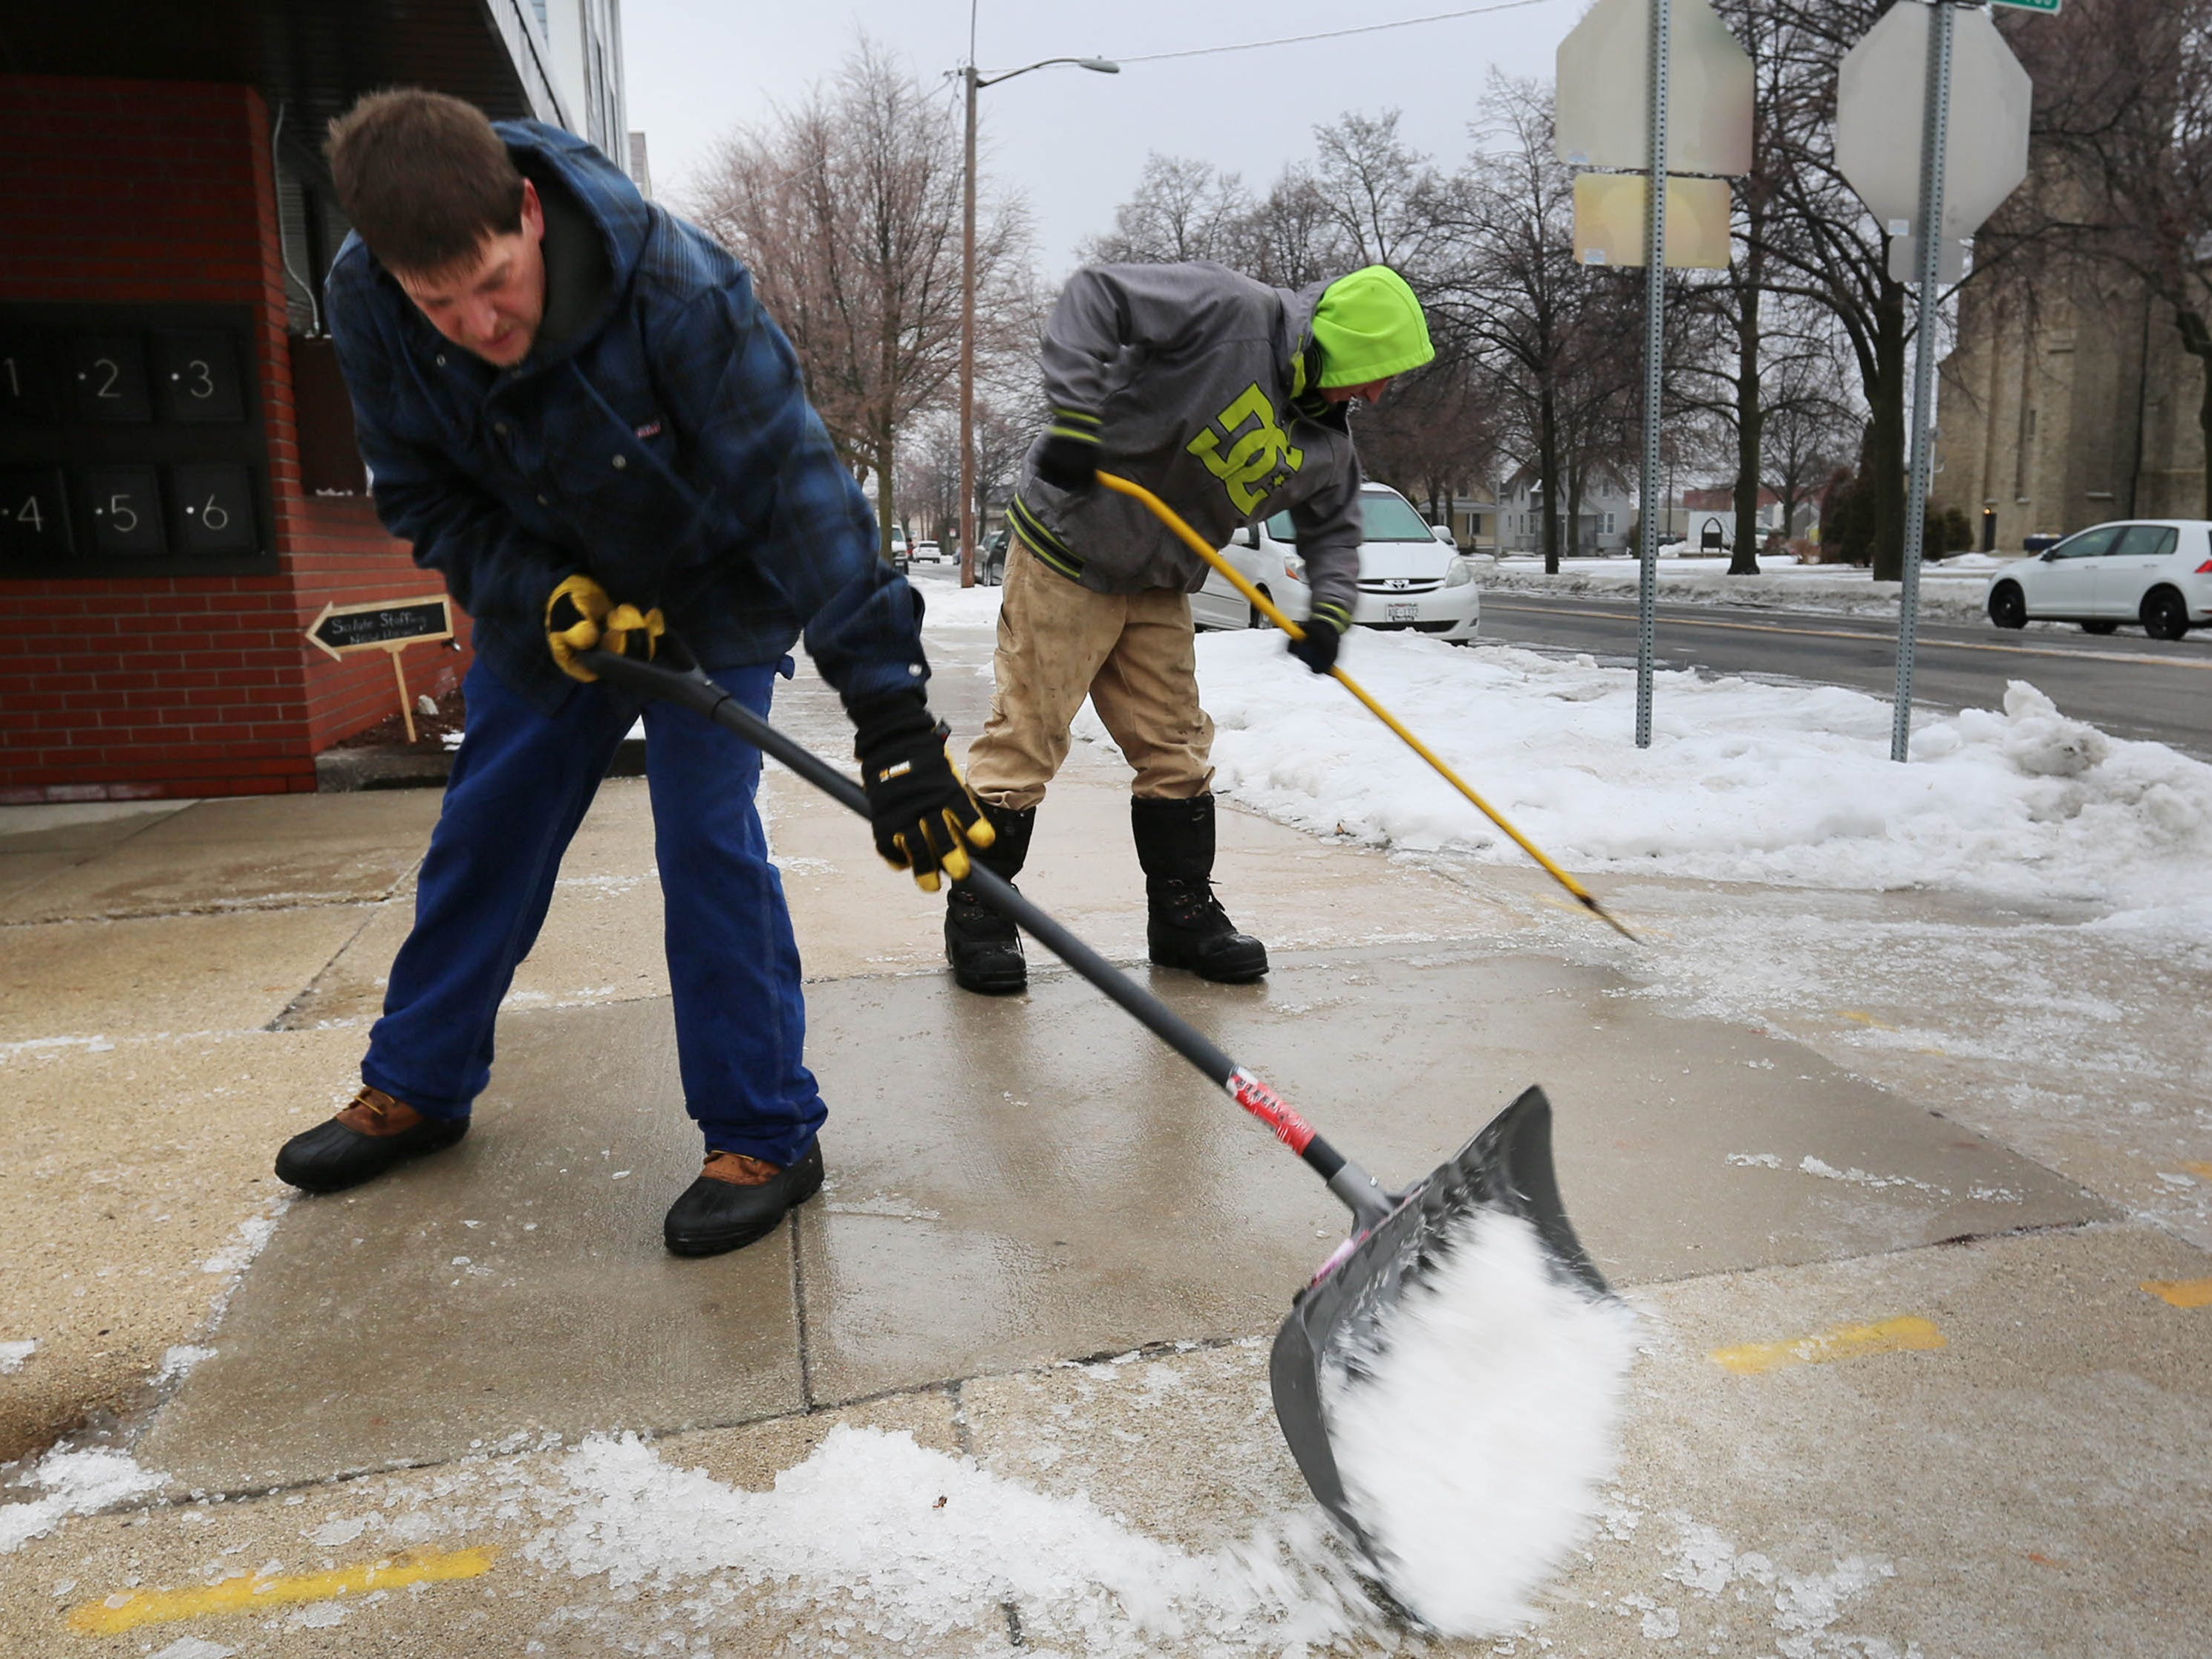 Dutcher Matyjasik, left, and Tom Wade scrape ice off sidewalk area at 8th and Superior Avenue, Tuesday, February 5, 2019, in Sheboygan, Wis. 